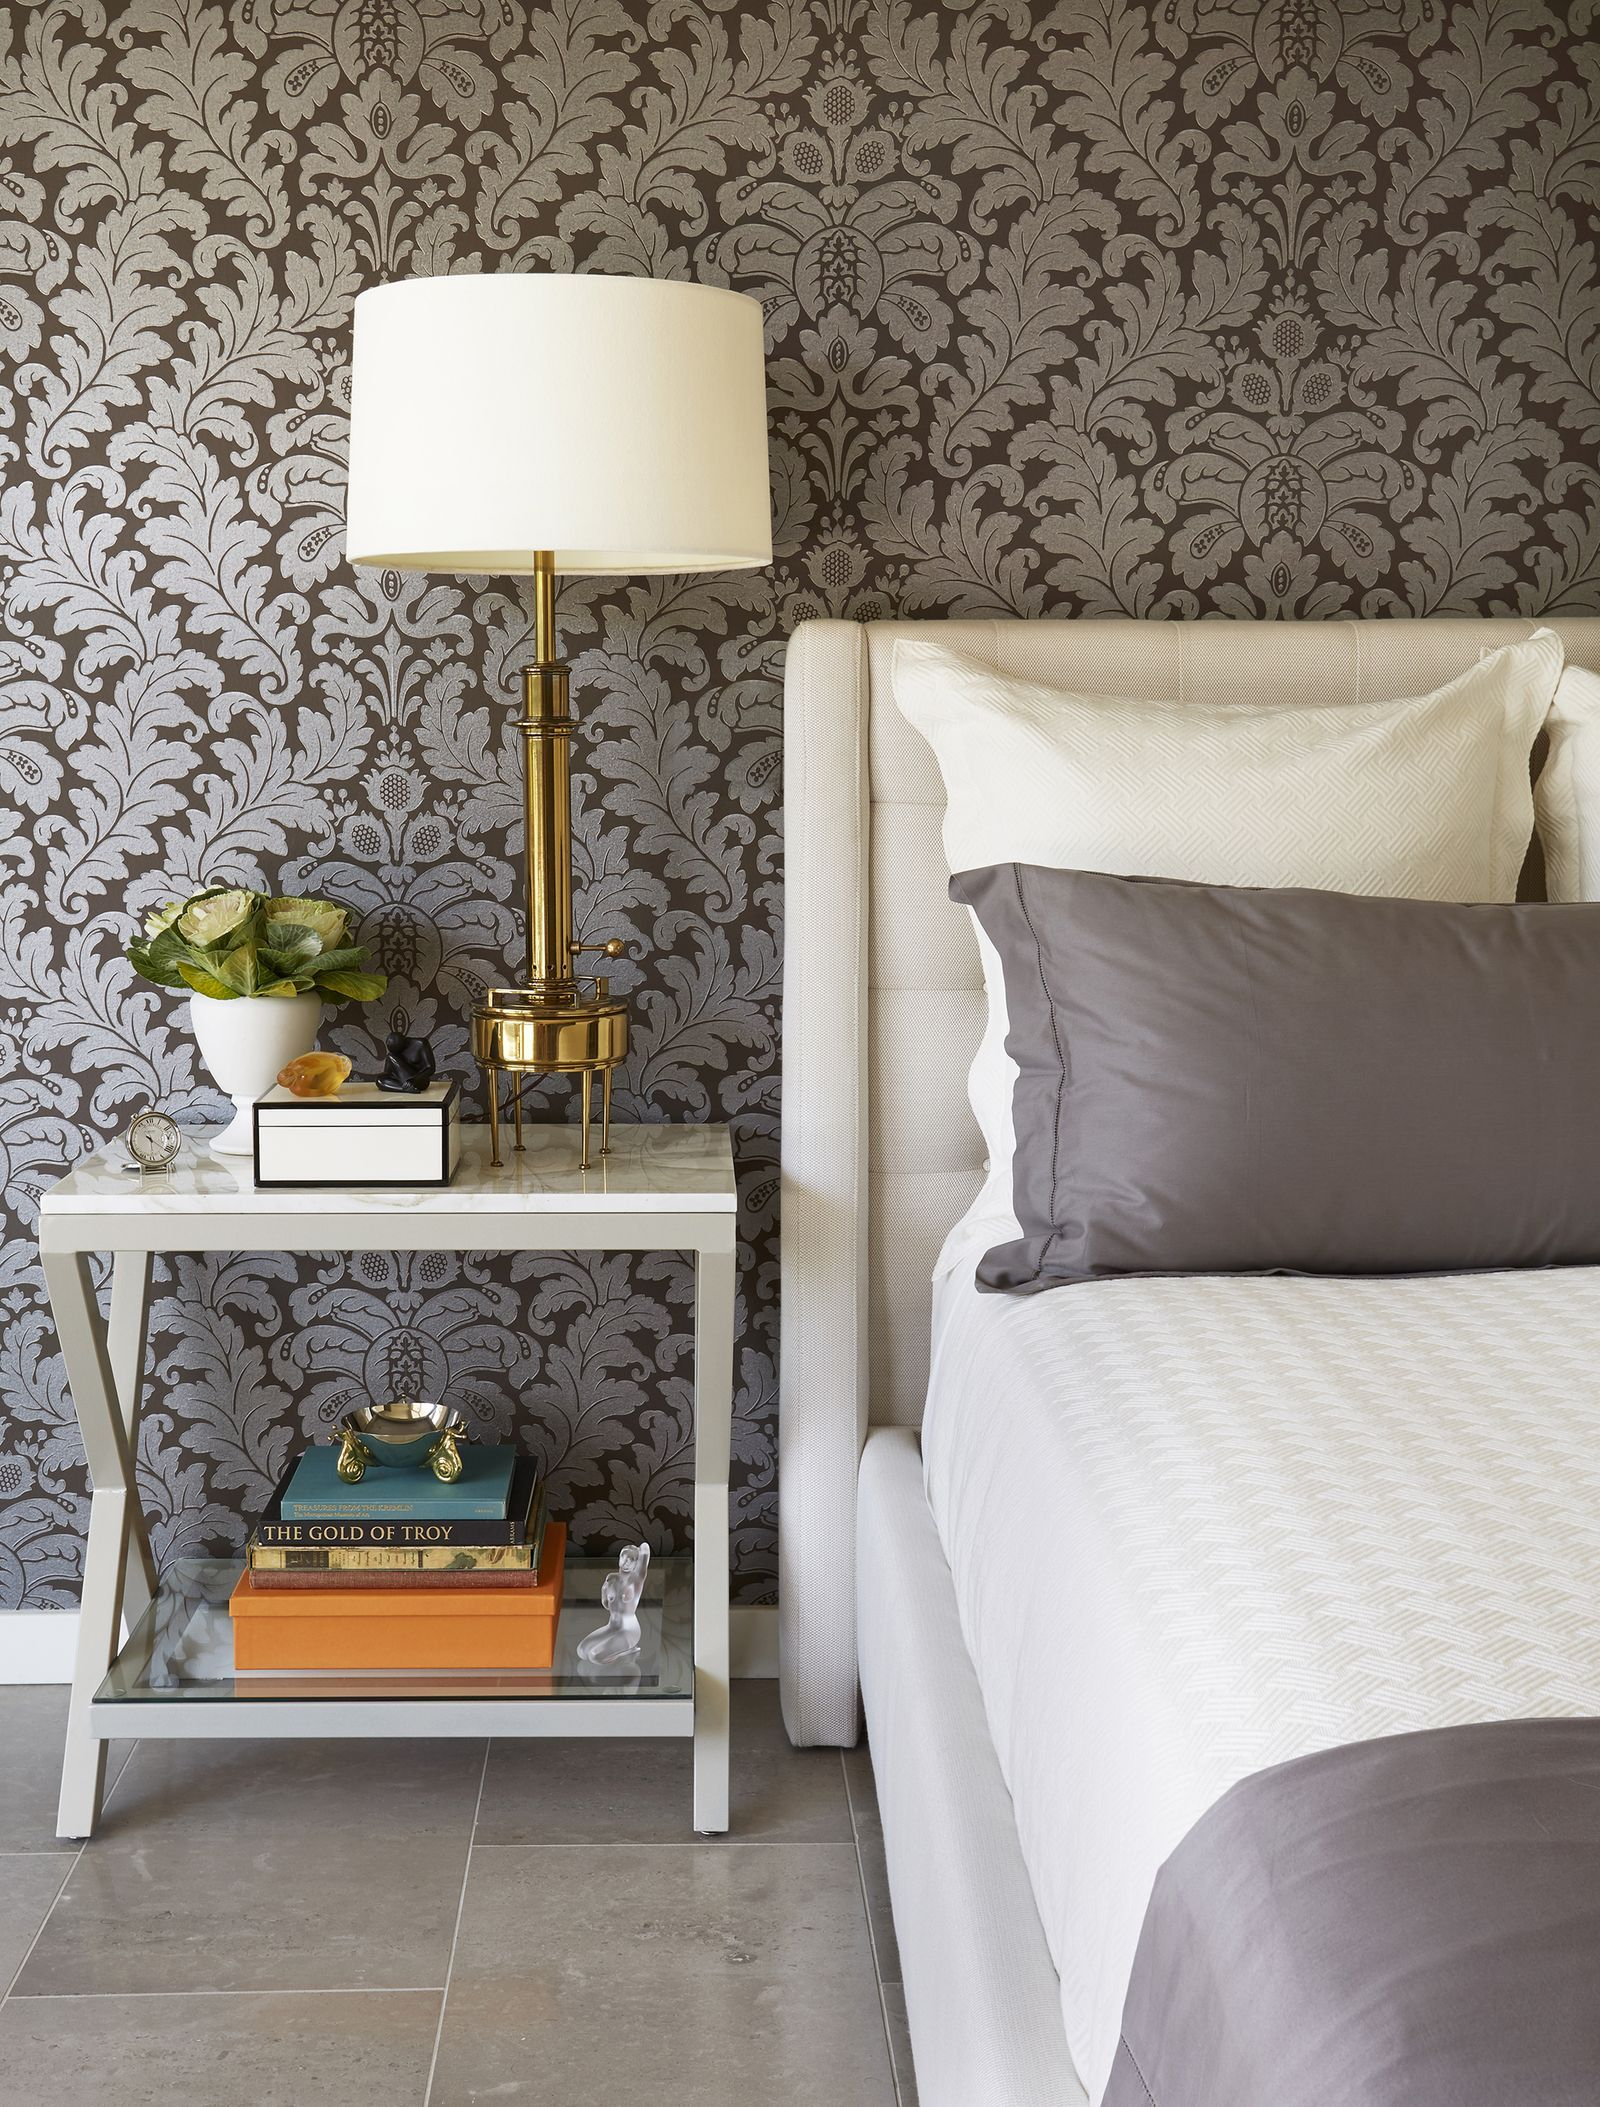 These Stunning Wallpapers Will Give Your Bedroom A New Mood In 2020 Master Bedroom Wallpaper Indian Bedroom Design Bedroom Wallpaper Ideas 2019